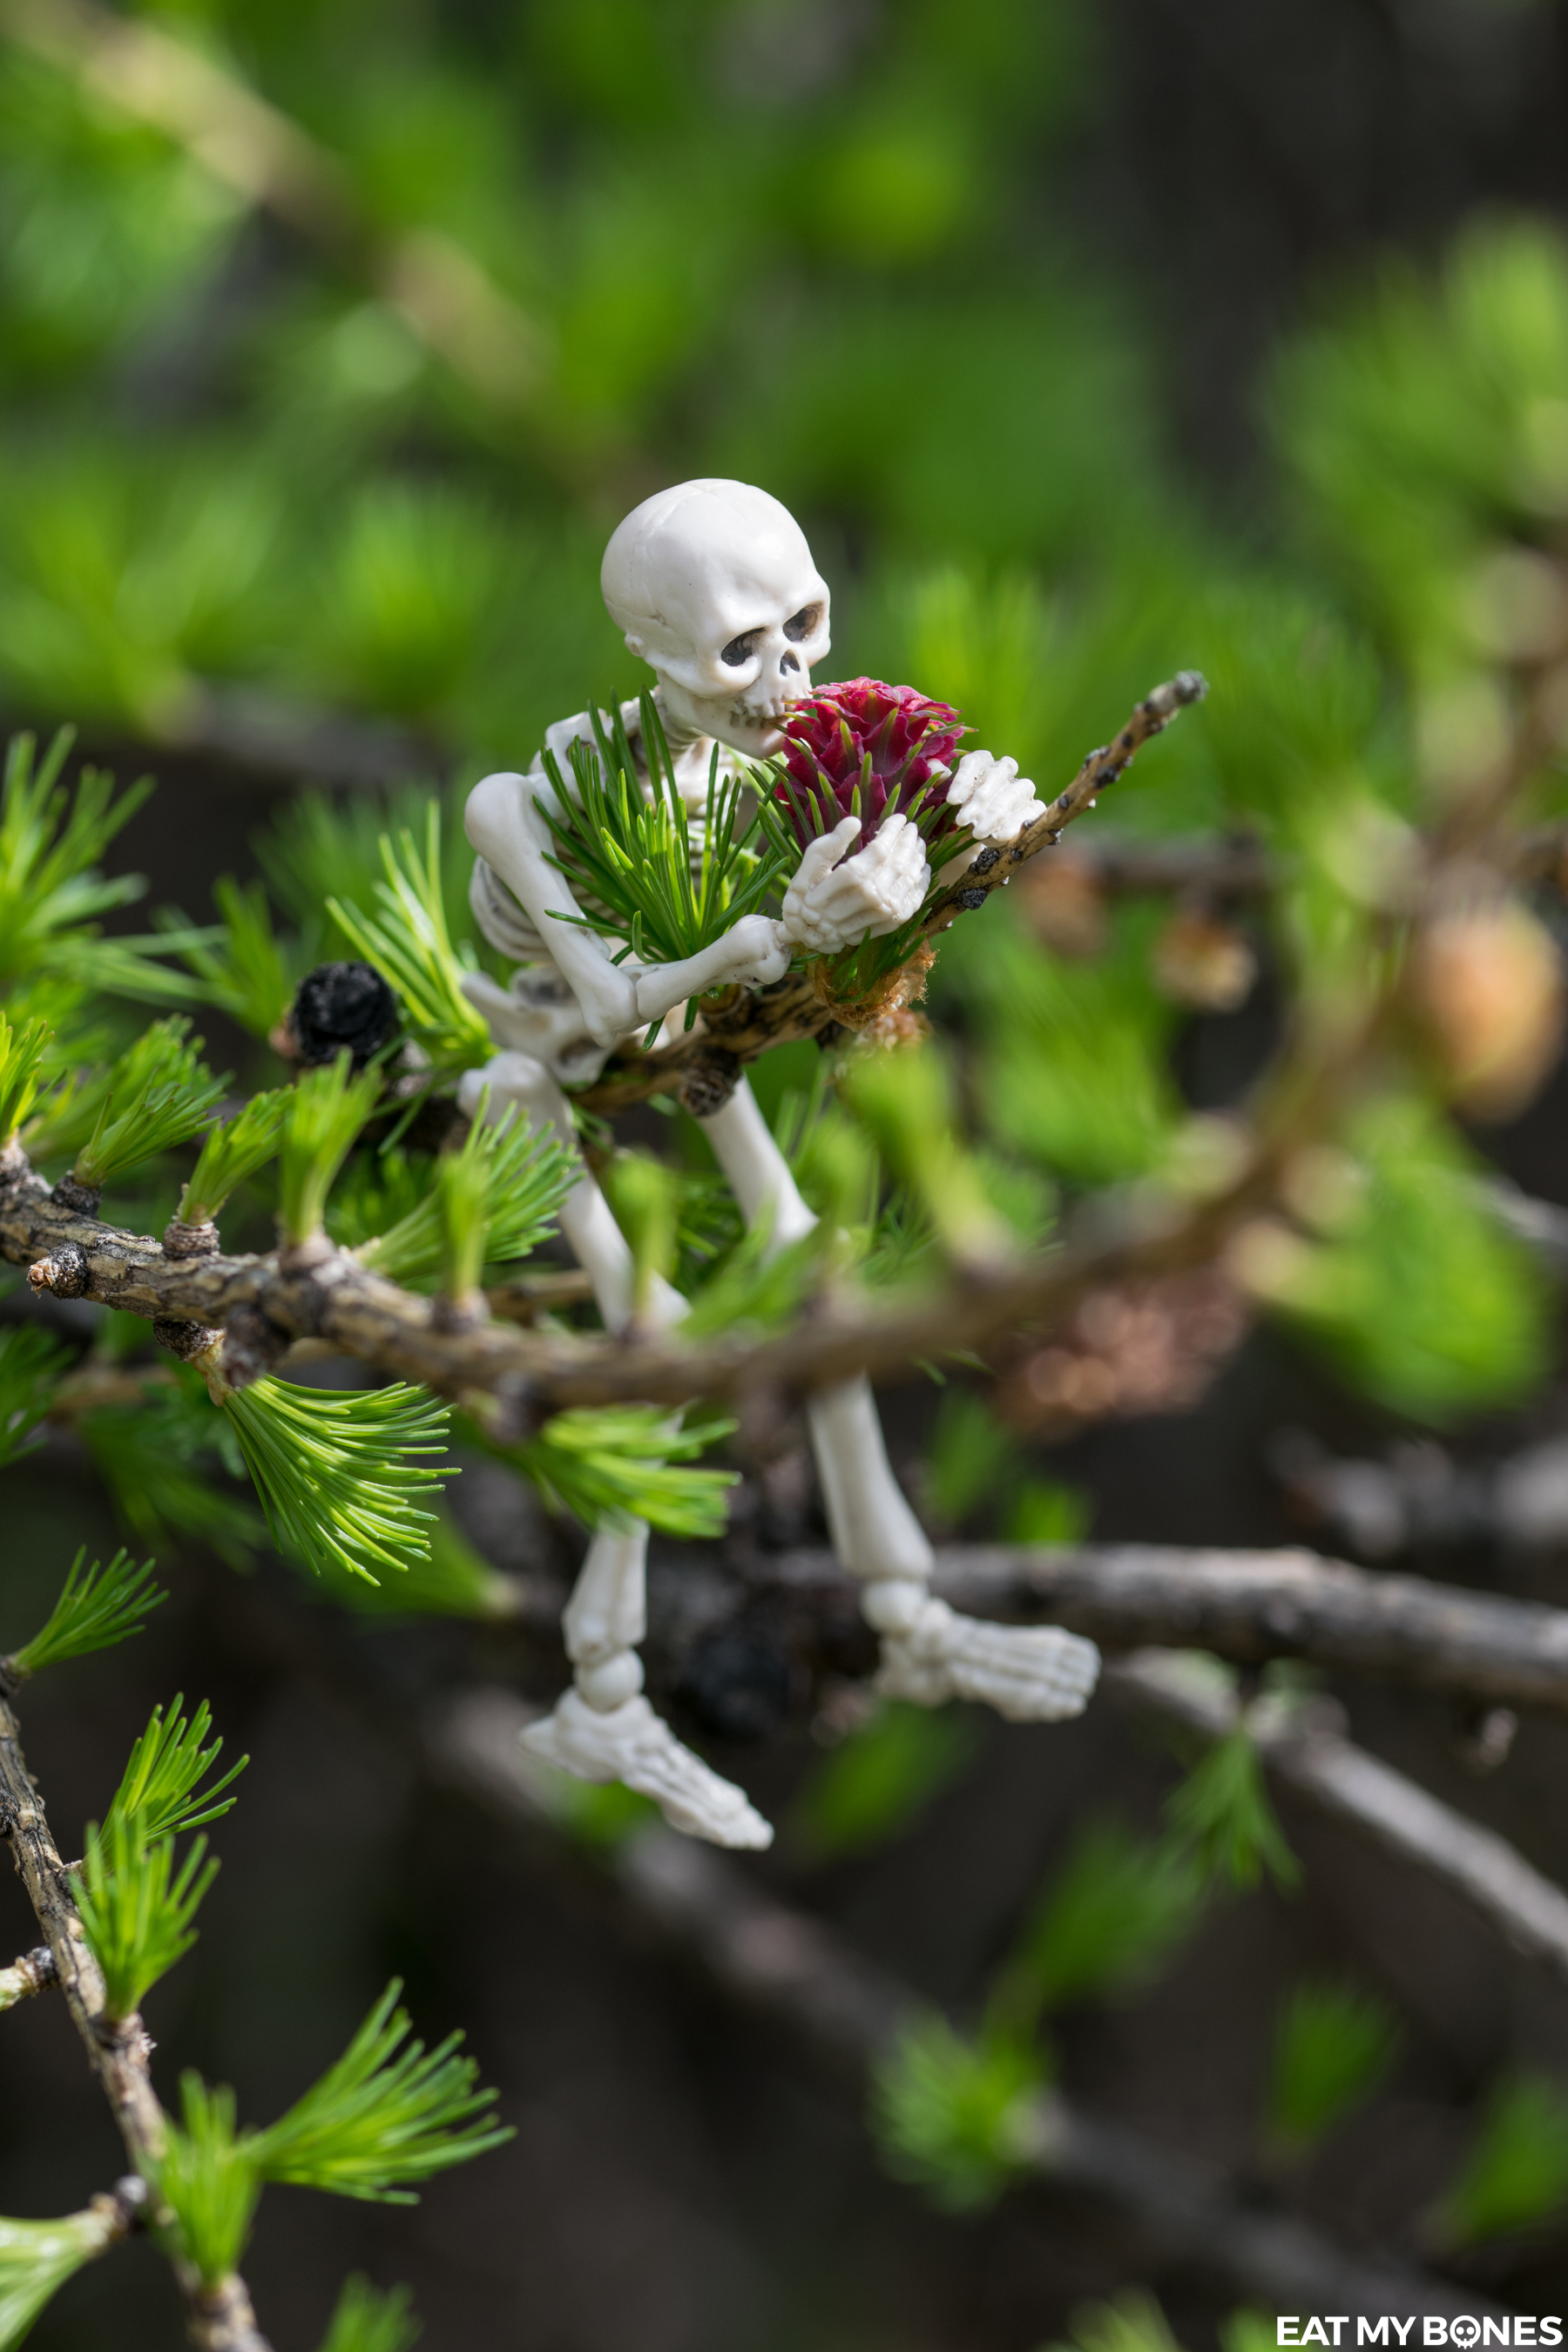 Alps - Pose Skeleton - Toy photography - Miniature - Eat my Bones